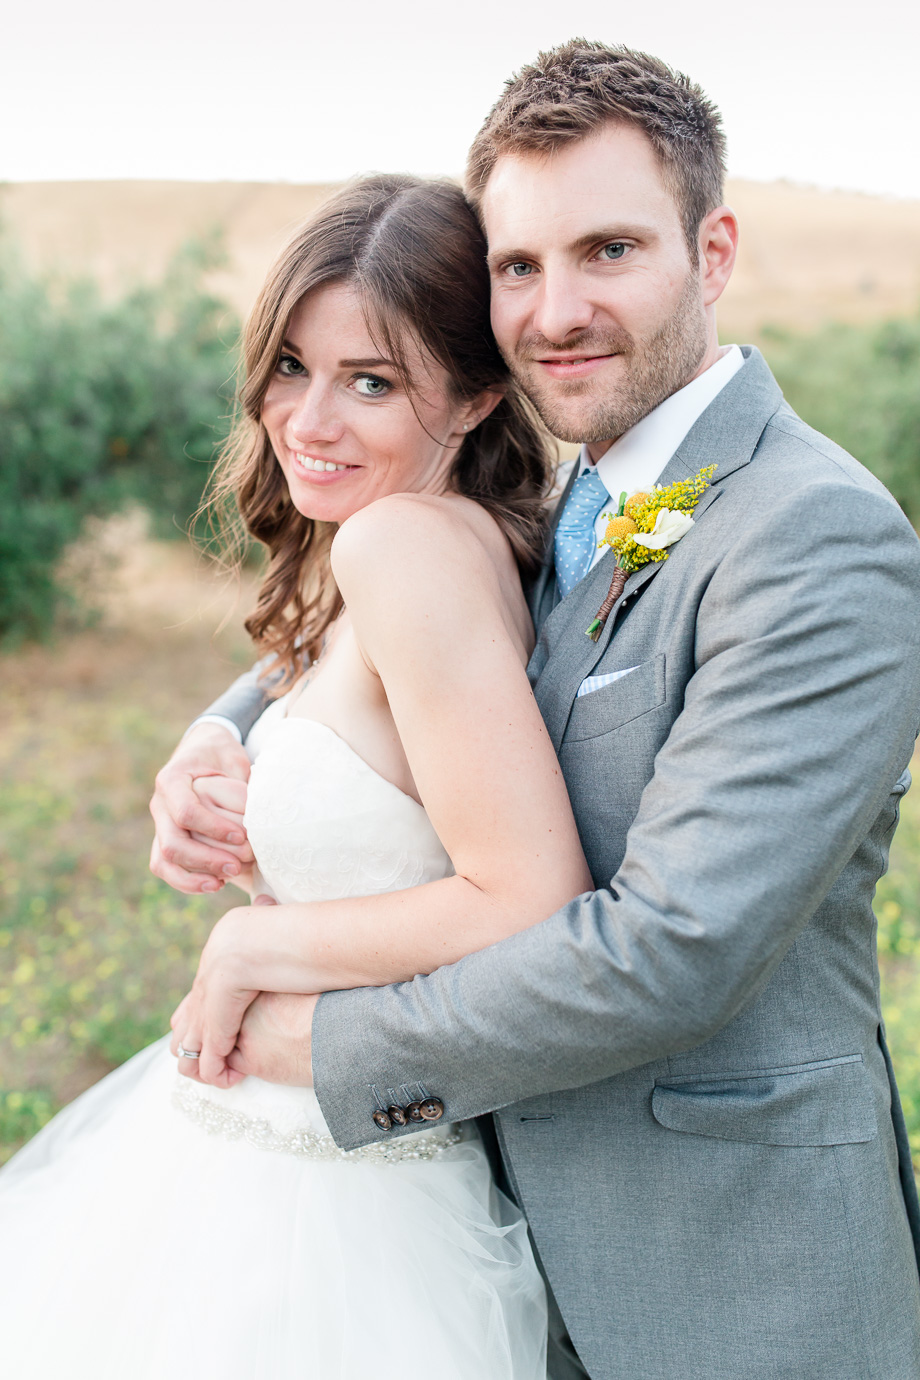 glowing bride and handsome groom portrait